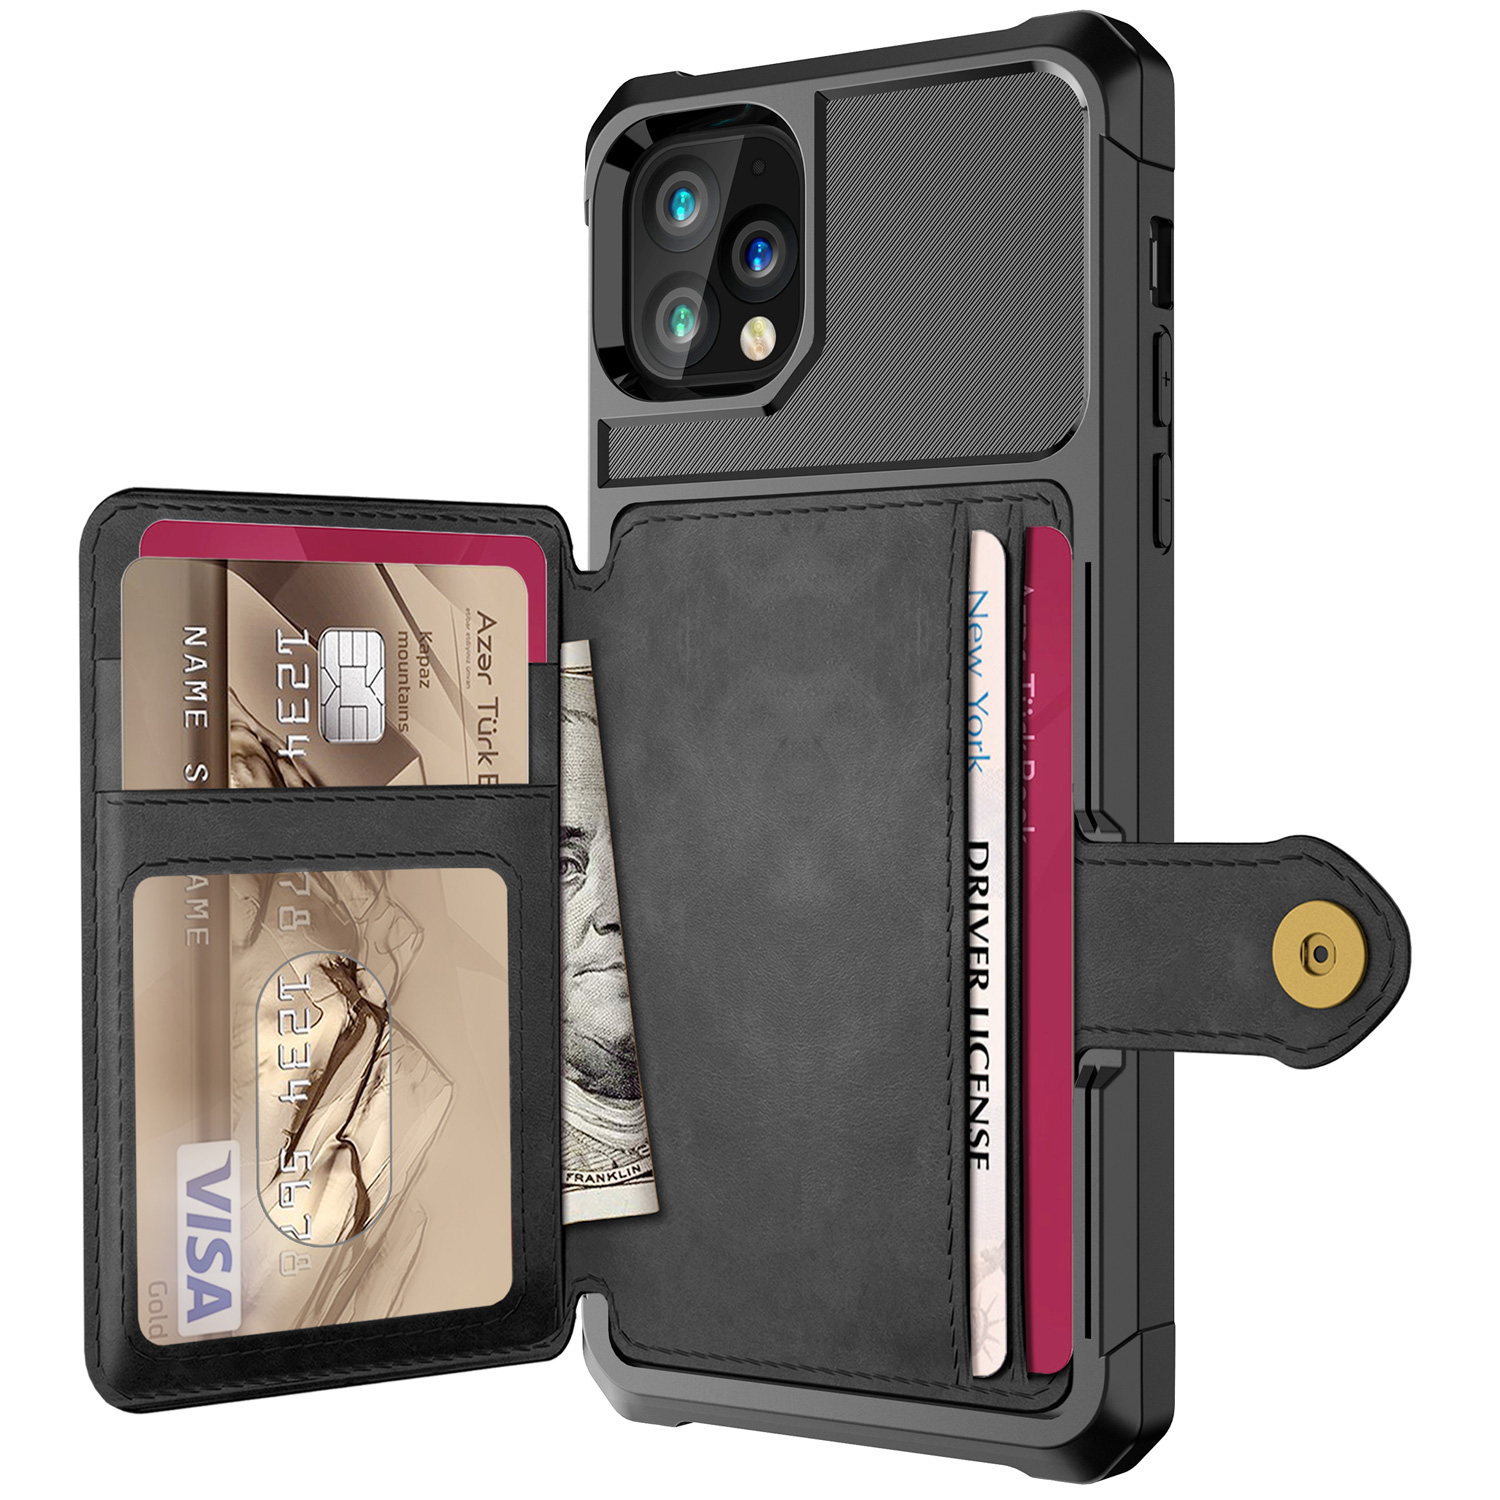 Luxury PU Leather Wallet Flip Cover Buckle Wallet Case for iPhone 12 Pro Max